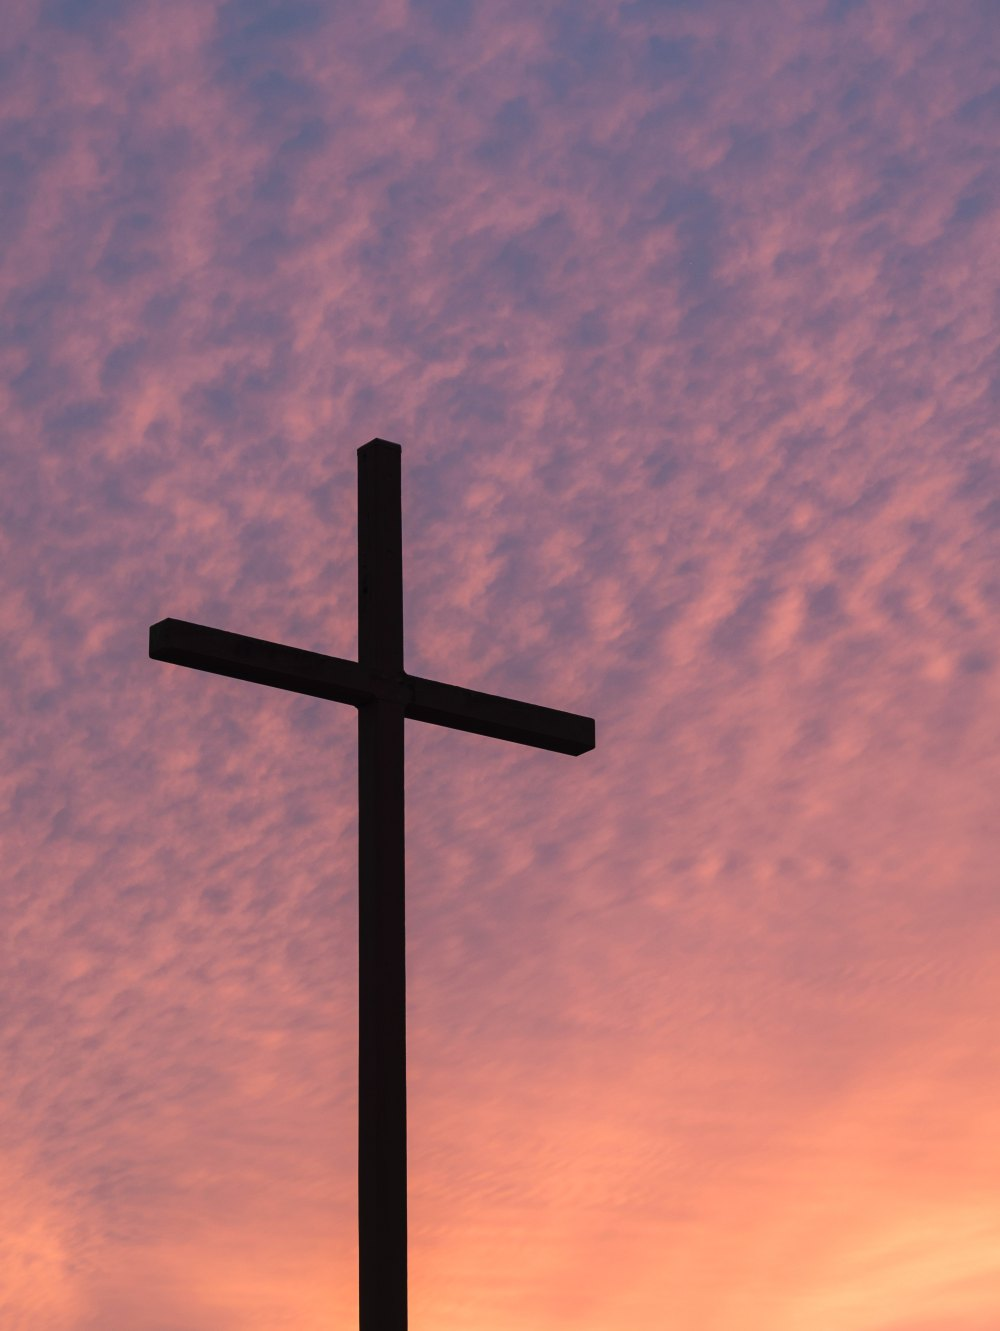 The Cross against a sunset